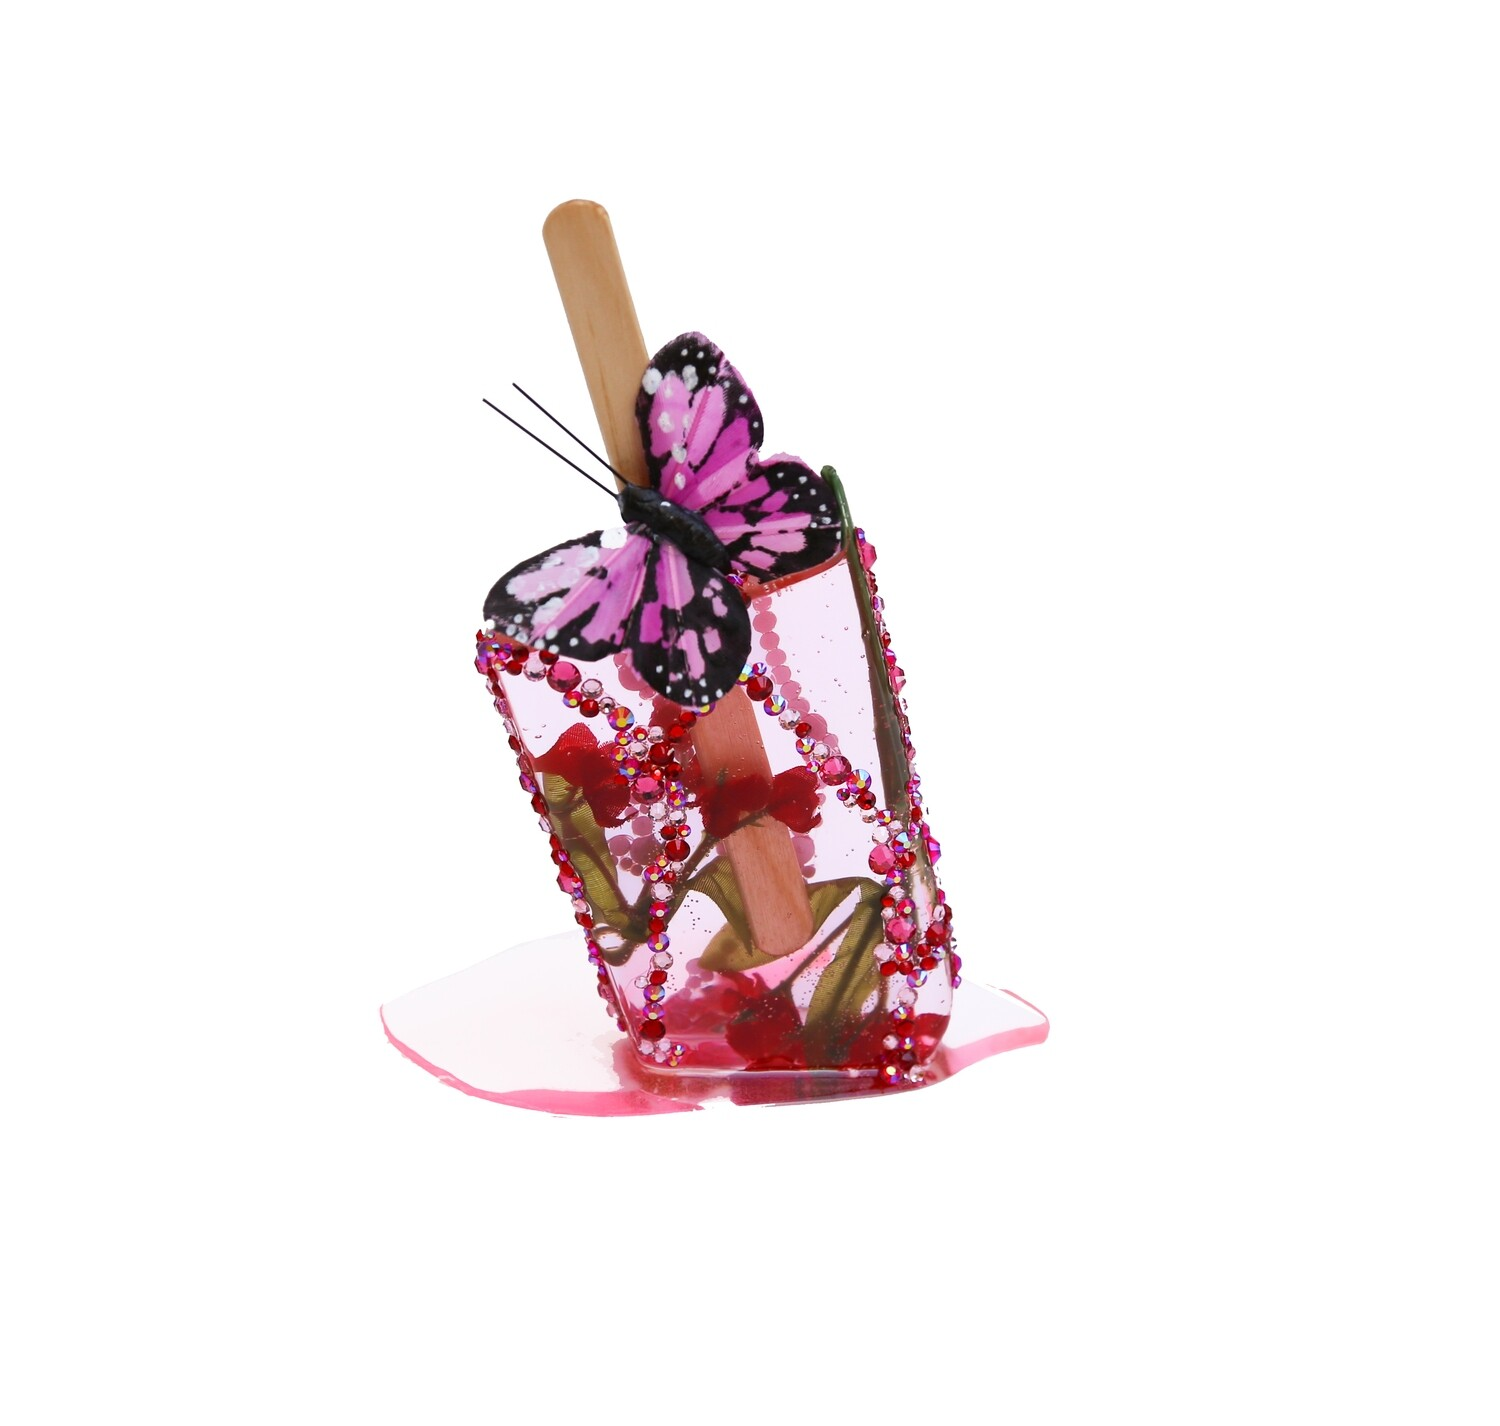 Floral Popsicle - Limited Edition 14/20, 2020